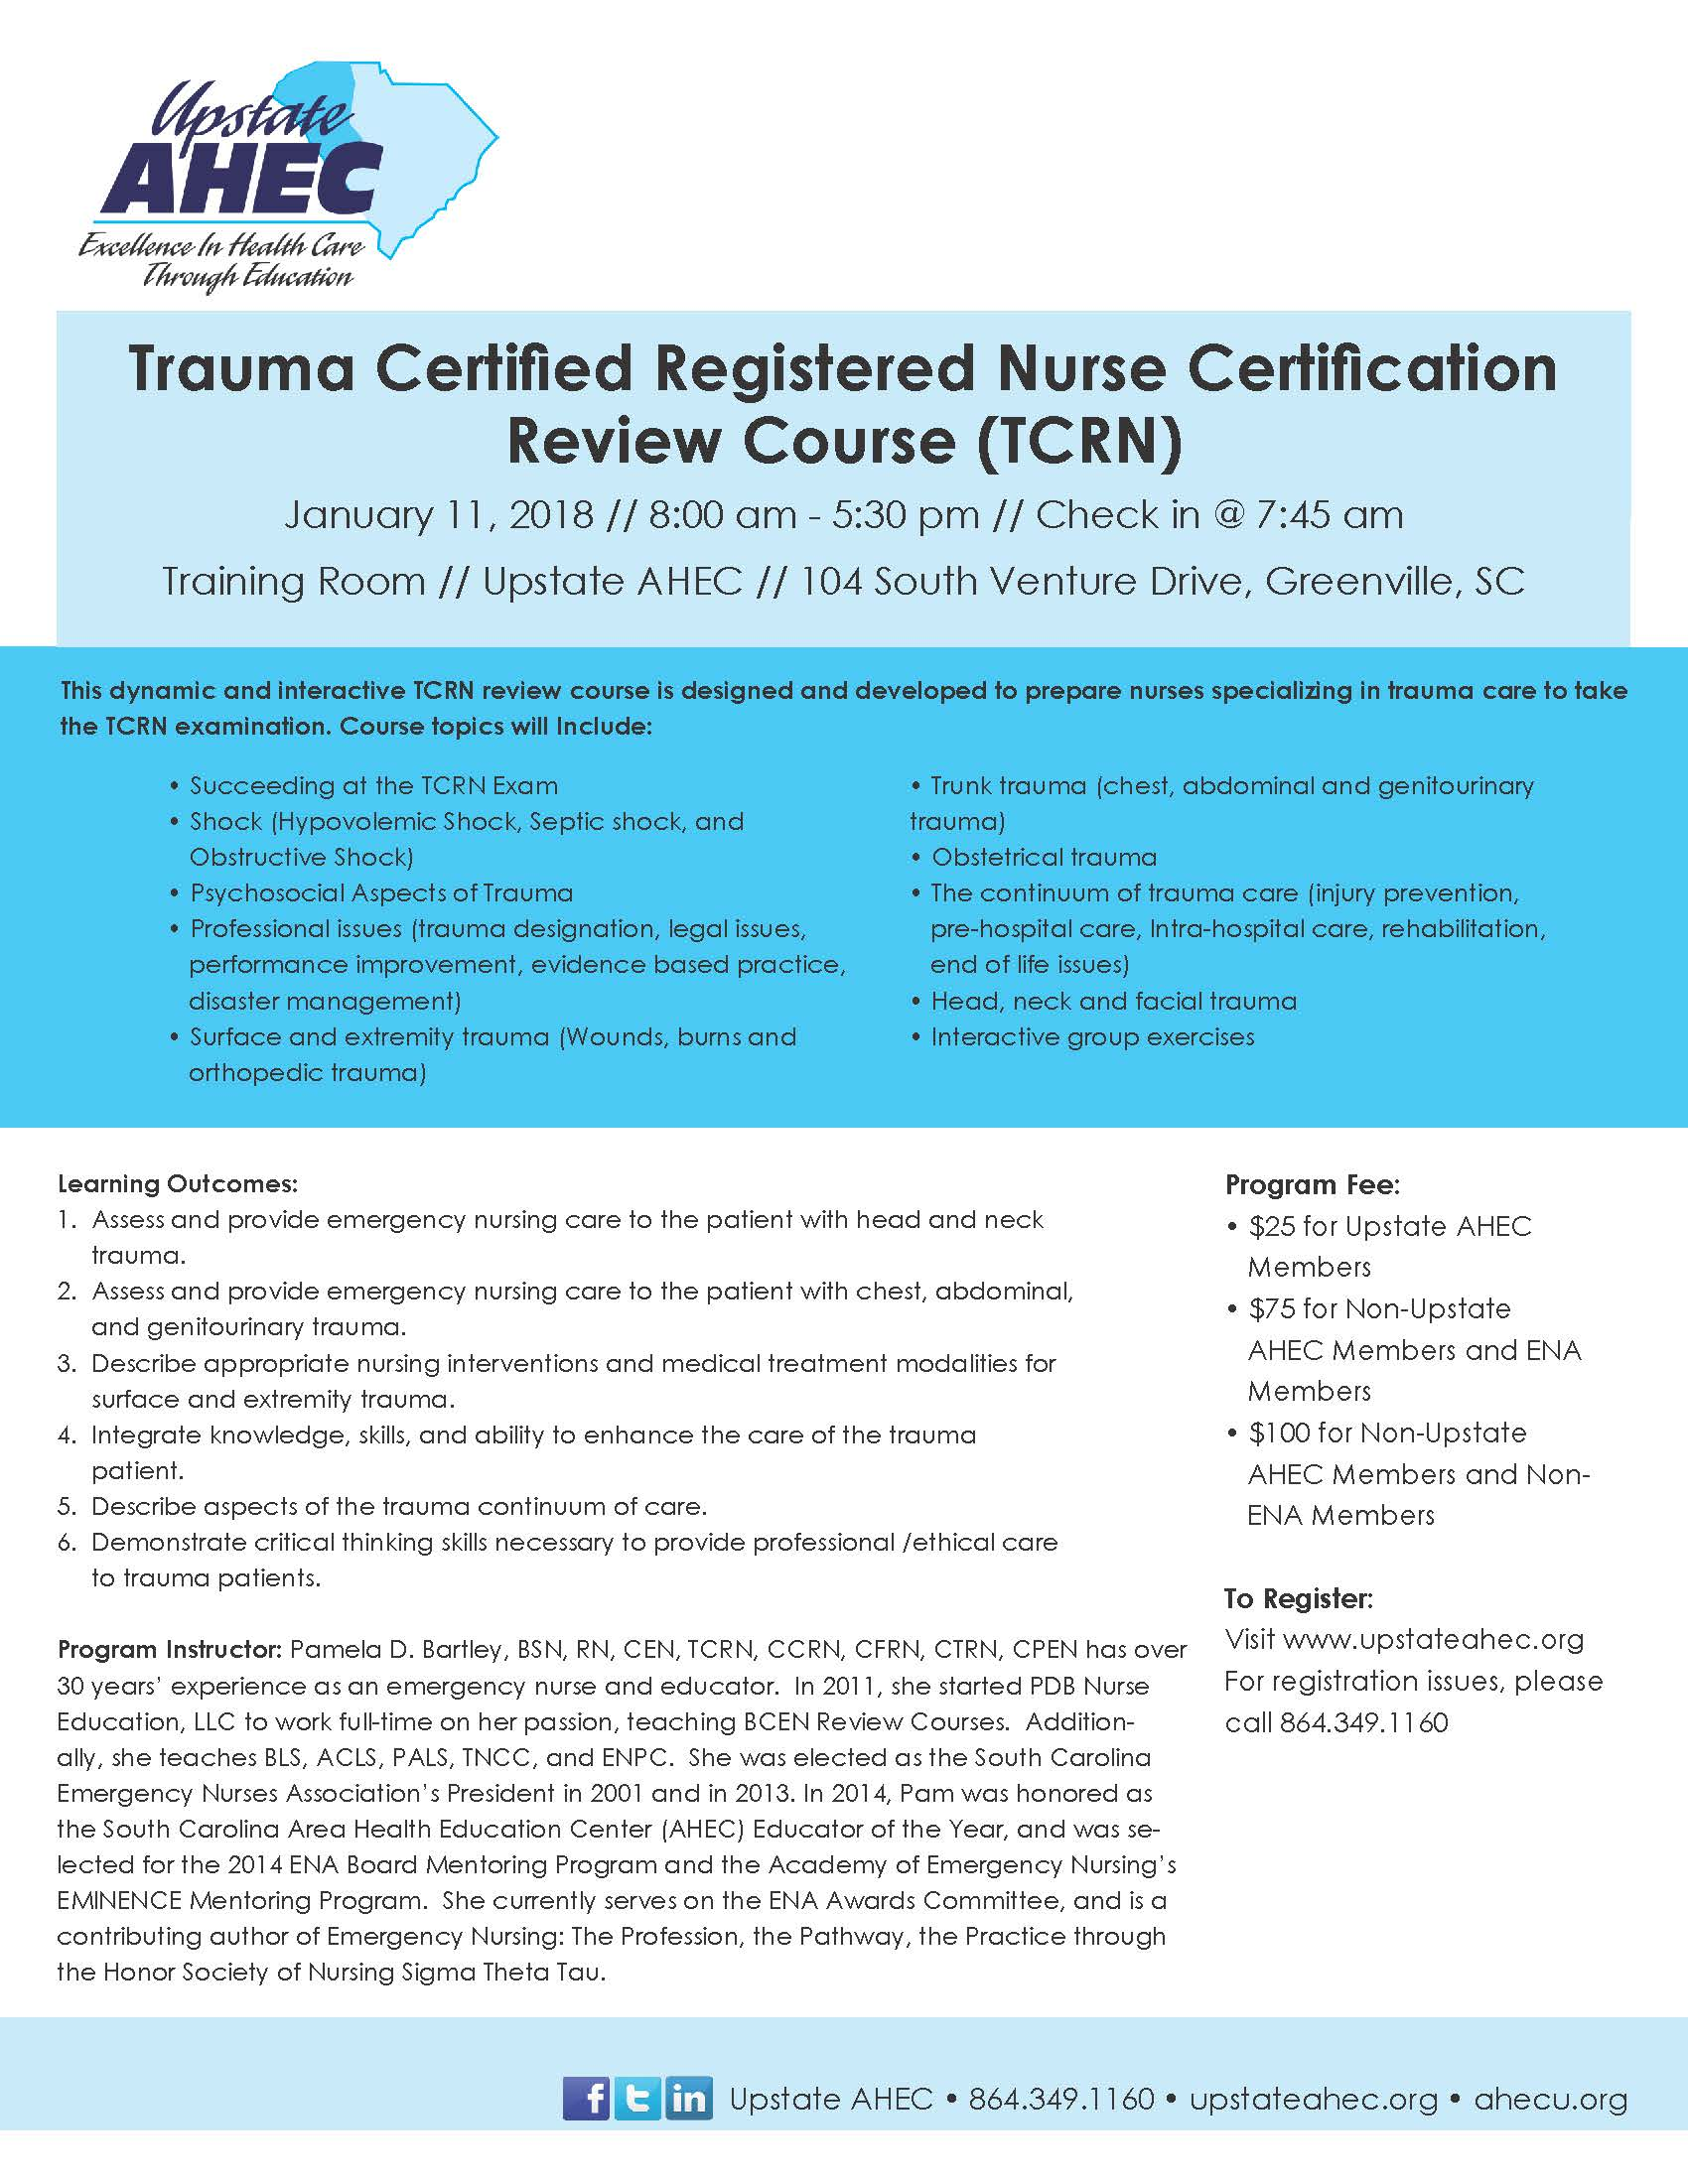 Trauma Certified Registered Nurse Certification Review Course Tcrn